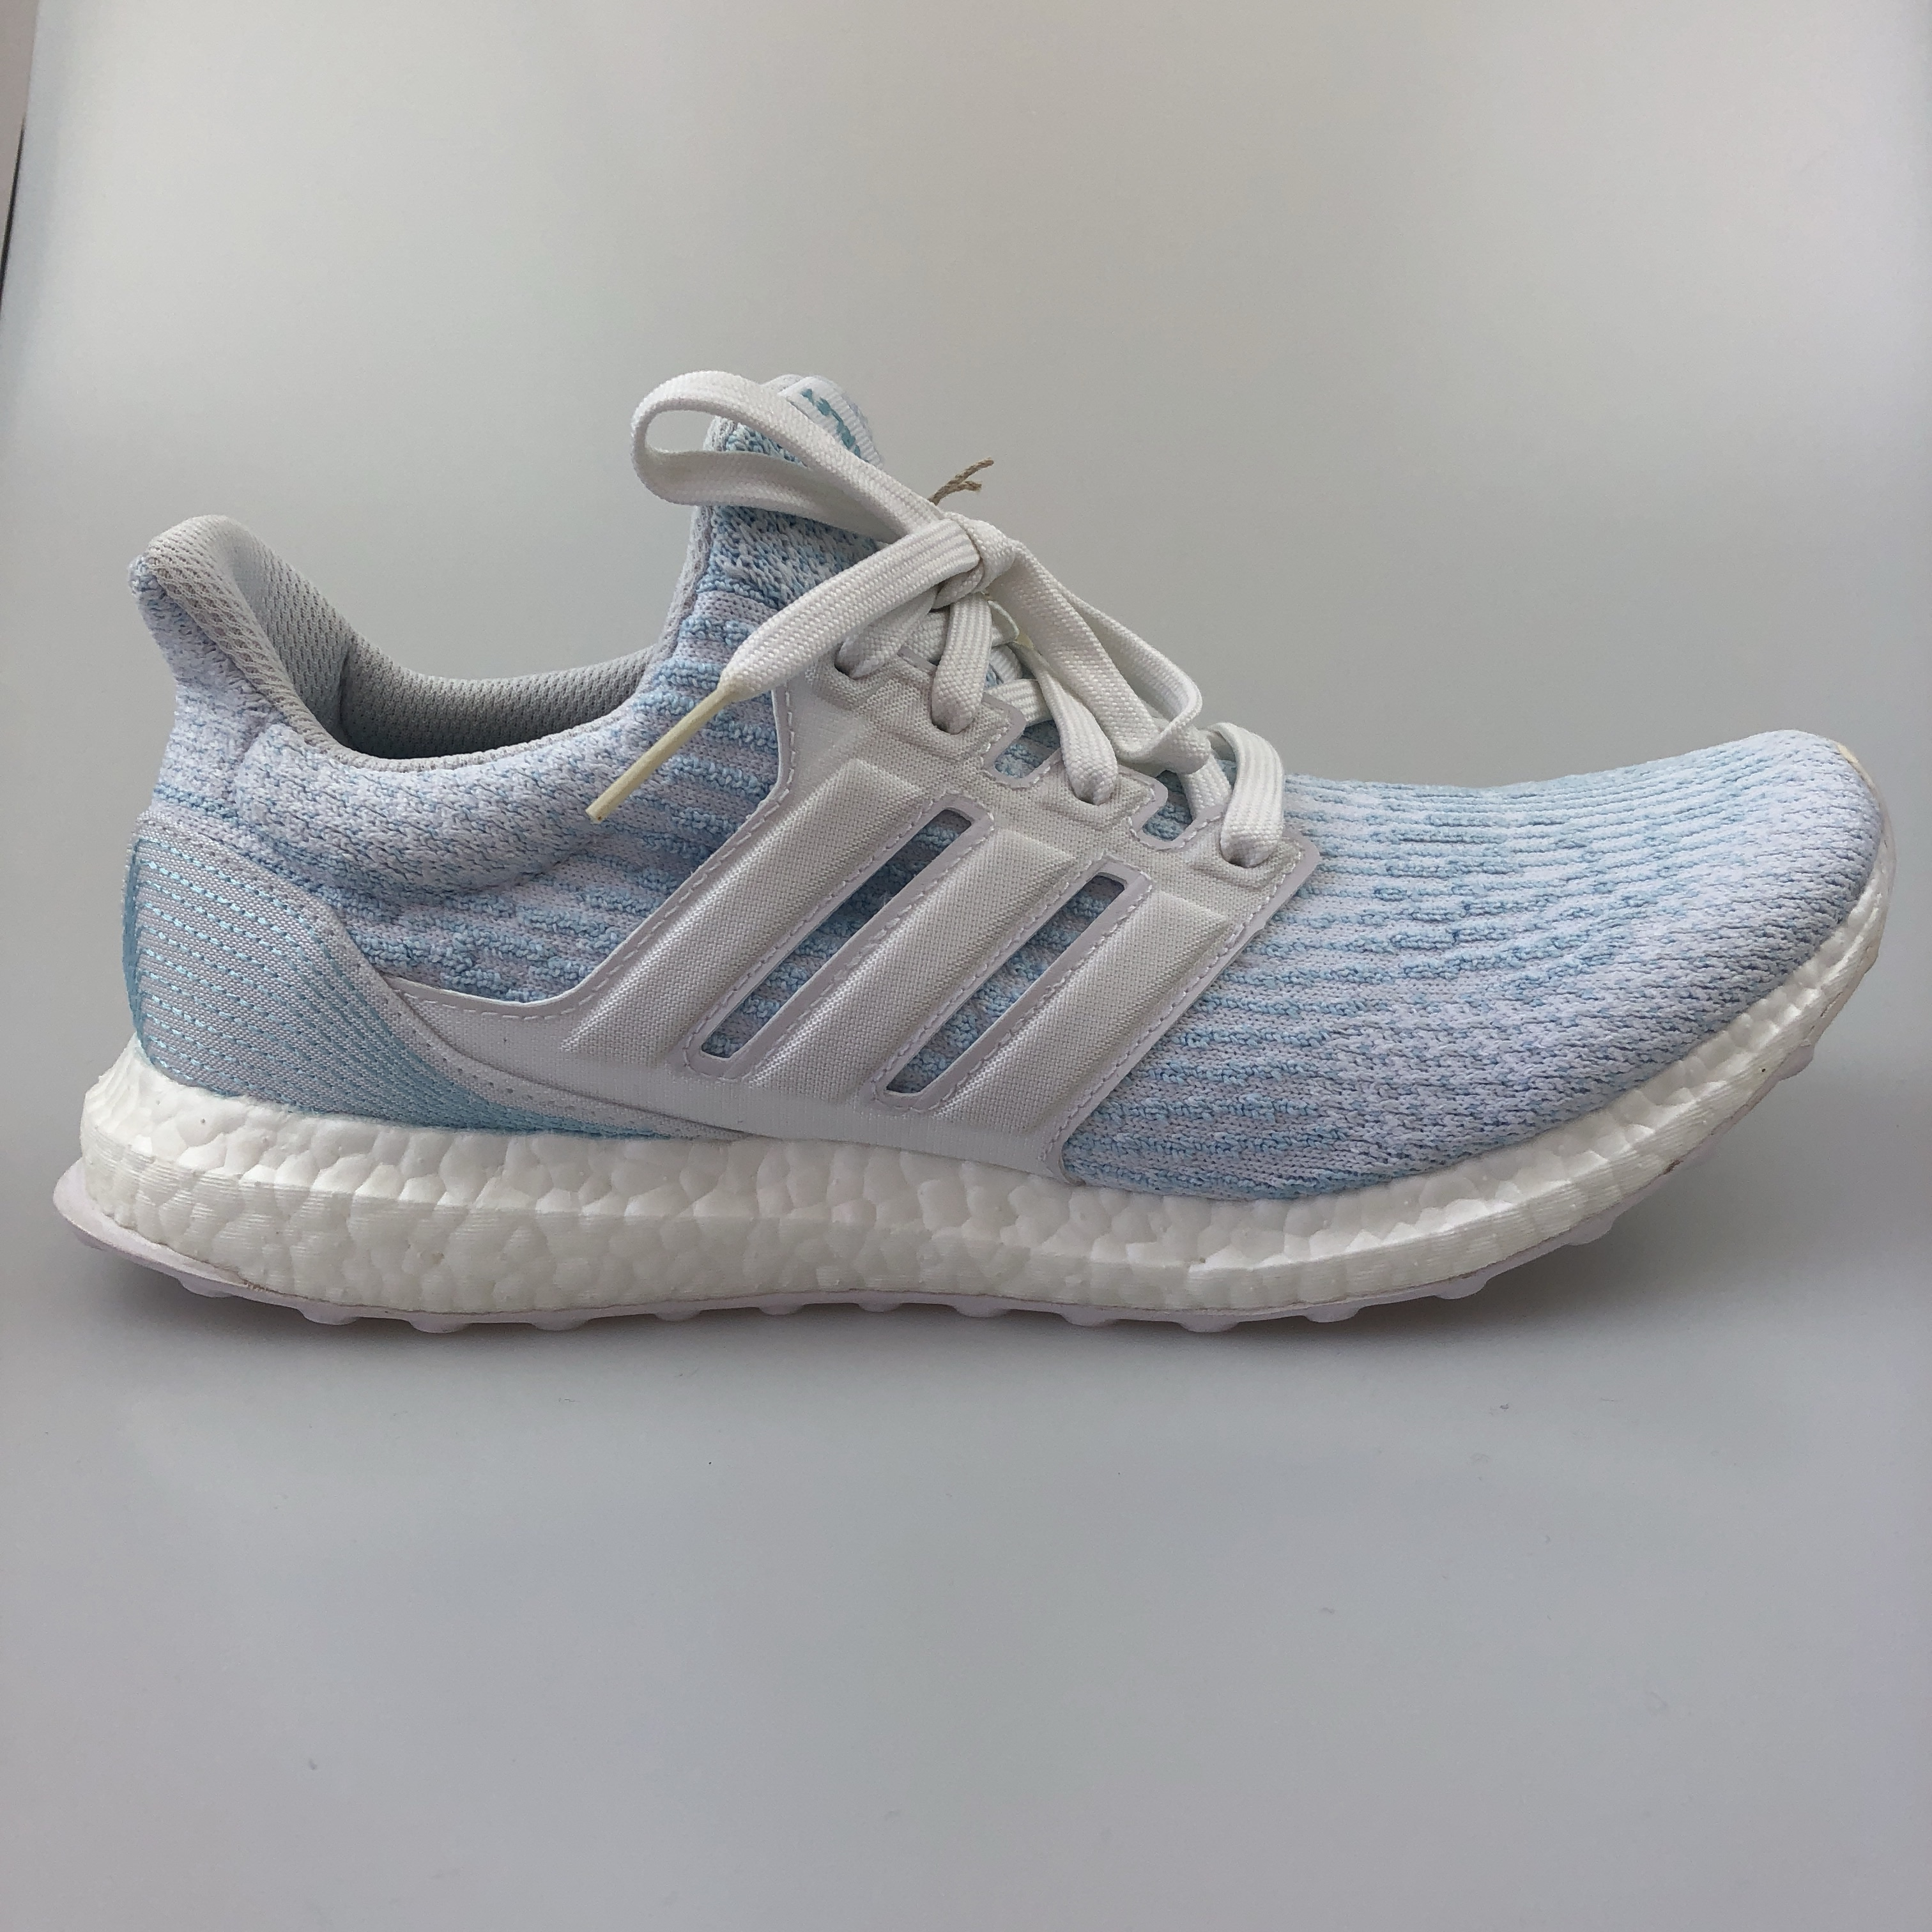 best service 1d205 88596 Adidas Ultra Boost 3.0 Parley: White/ Icey Blue (UK... - Depop